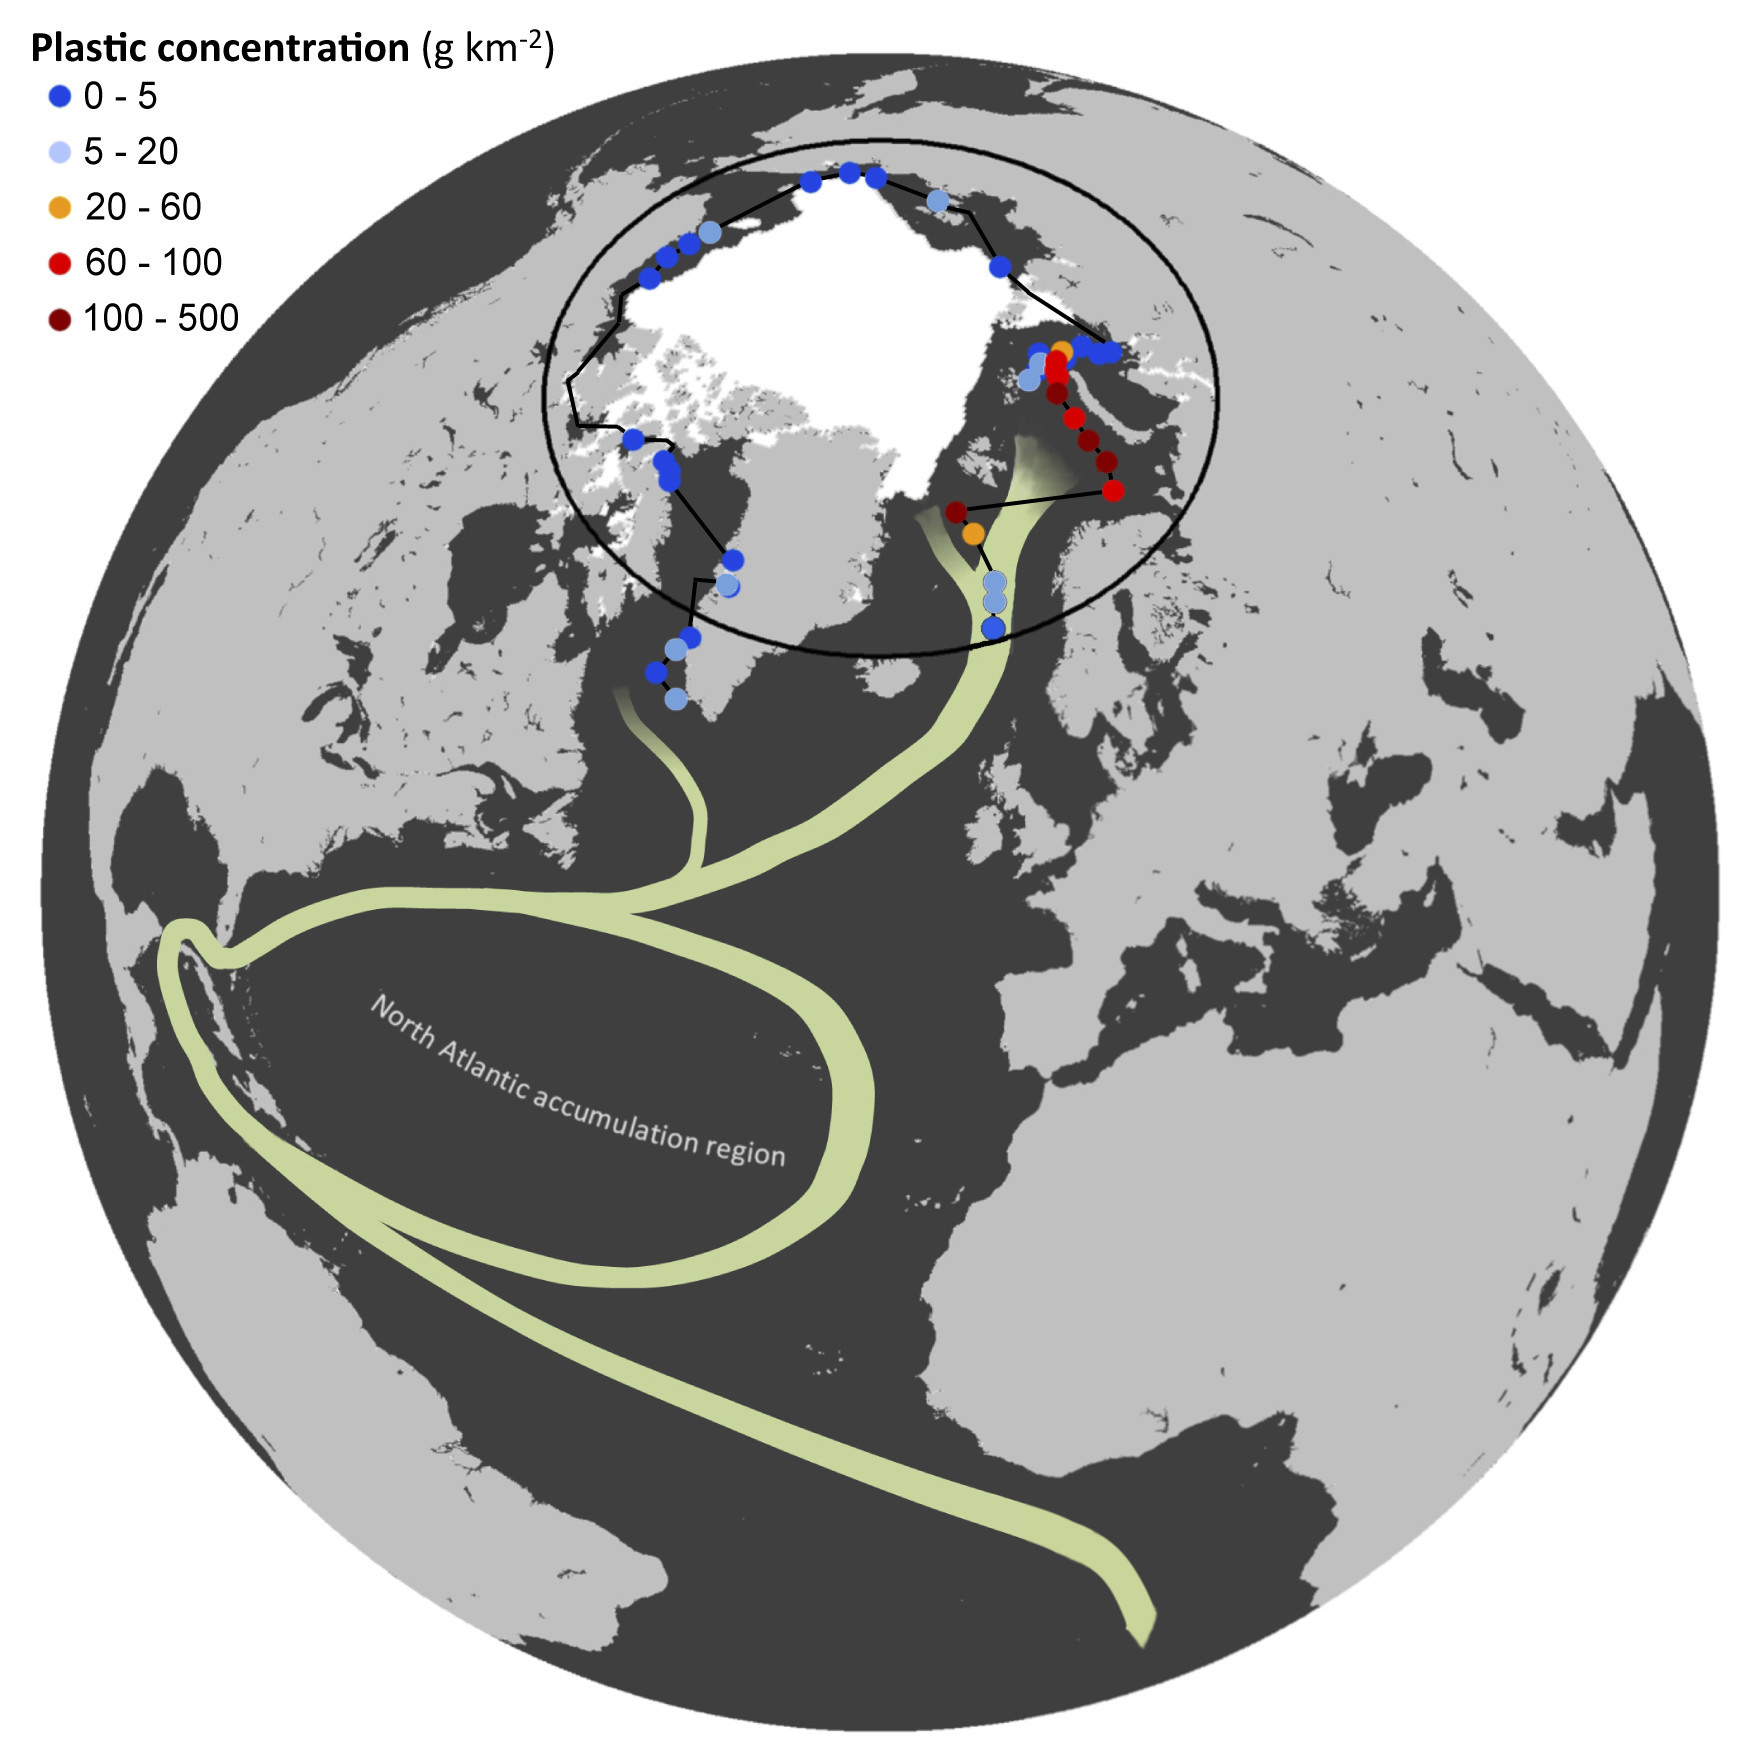 Locations and plastic concentrations of the sites sampled. The white area shows the extension of the polar ice cap in August 2013, and green curves represent the North Atlantic Subtropical Ocean Gyres and the Global Thermohaline Circulation poleward branch.